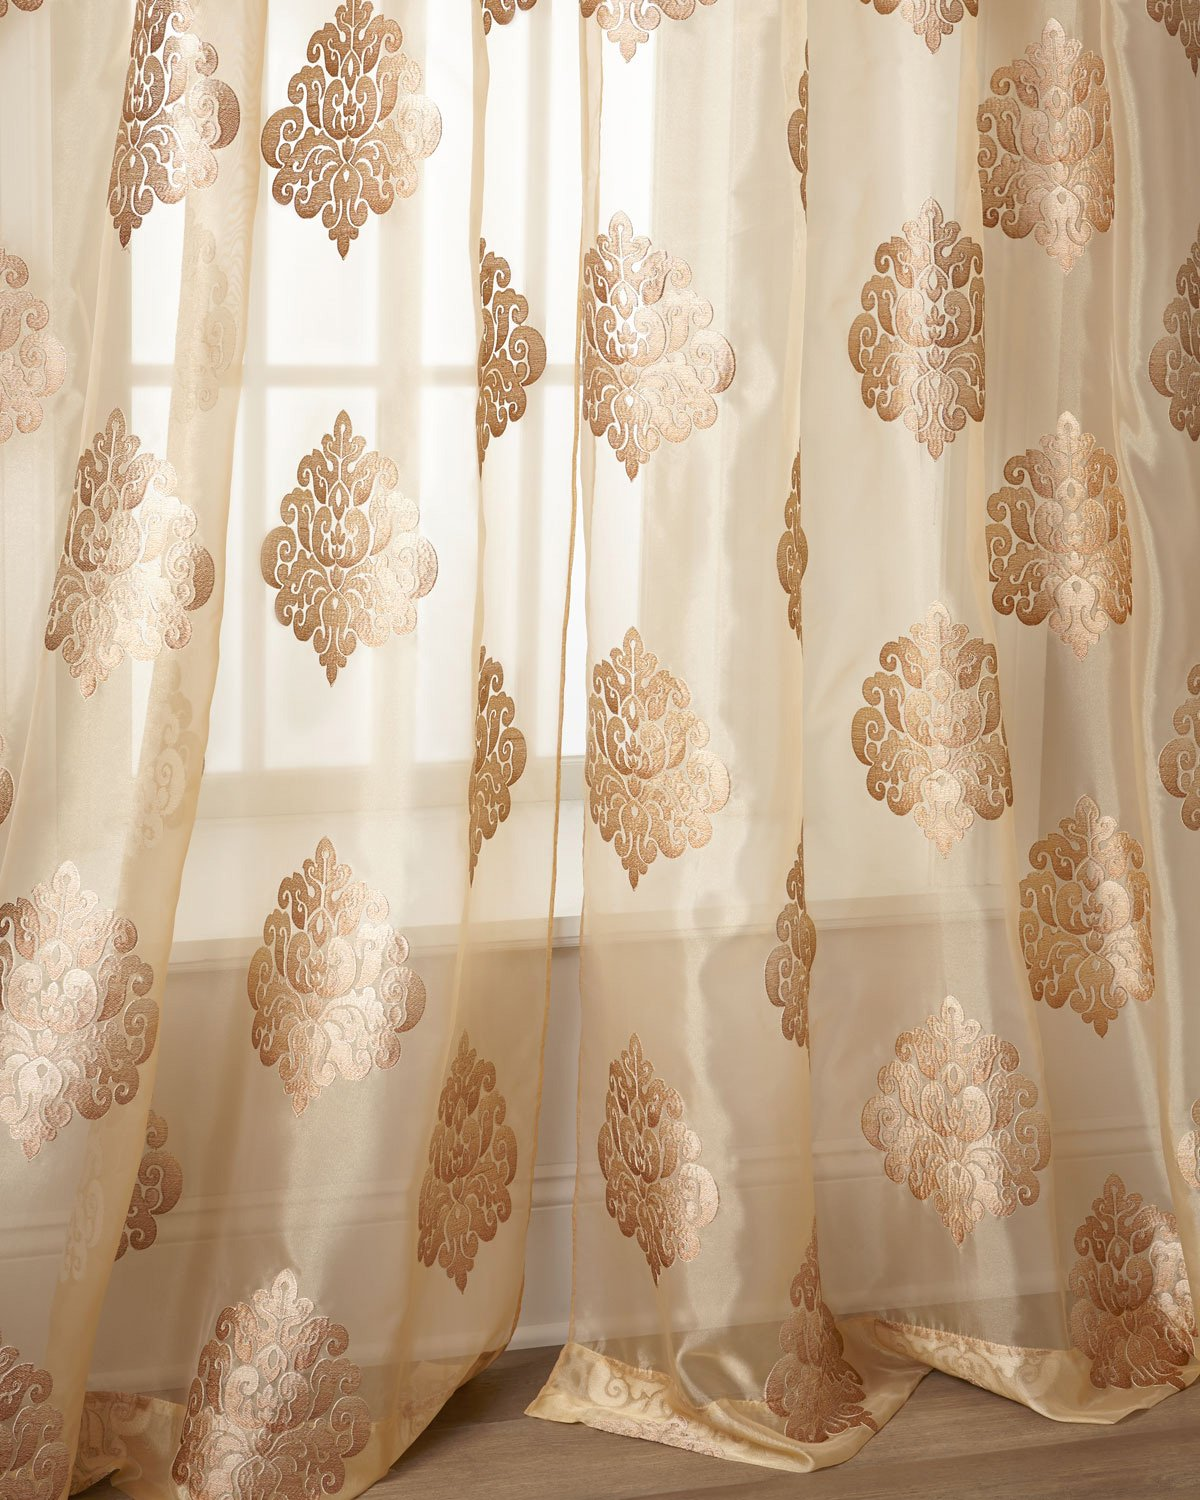 pleated processing white generic yarn voile sheer size bedroom tape az x living natural panels embroidery top embroidered large elegant finel room curtains for pull